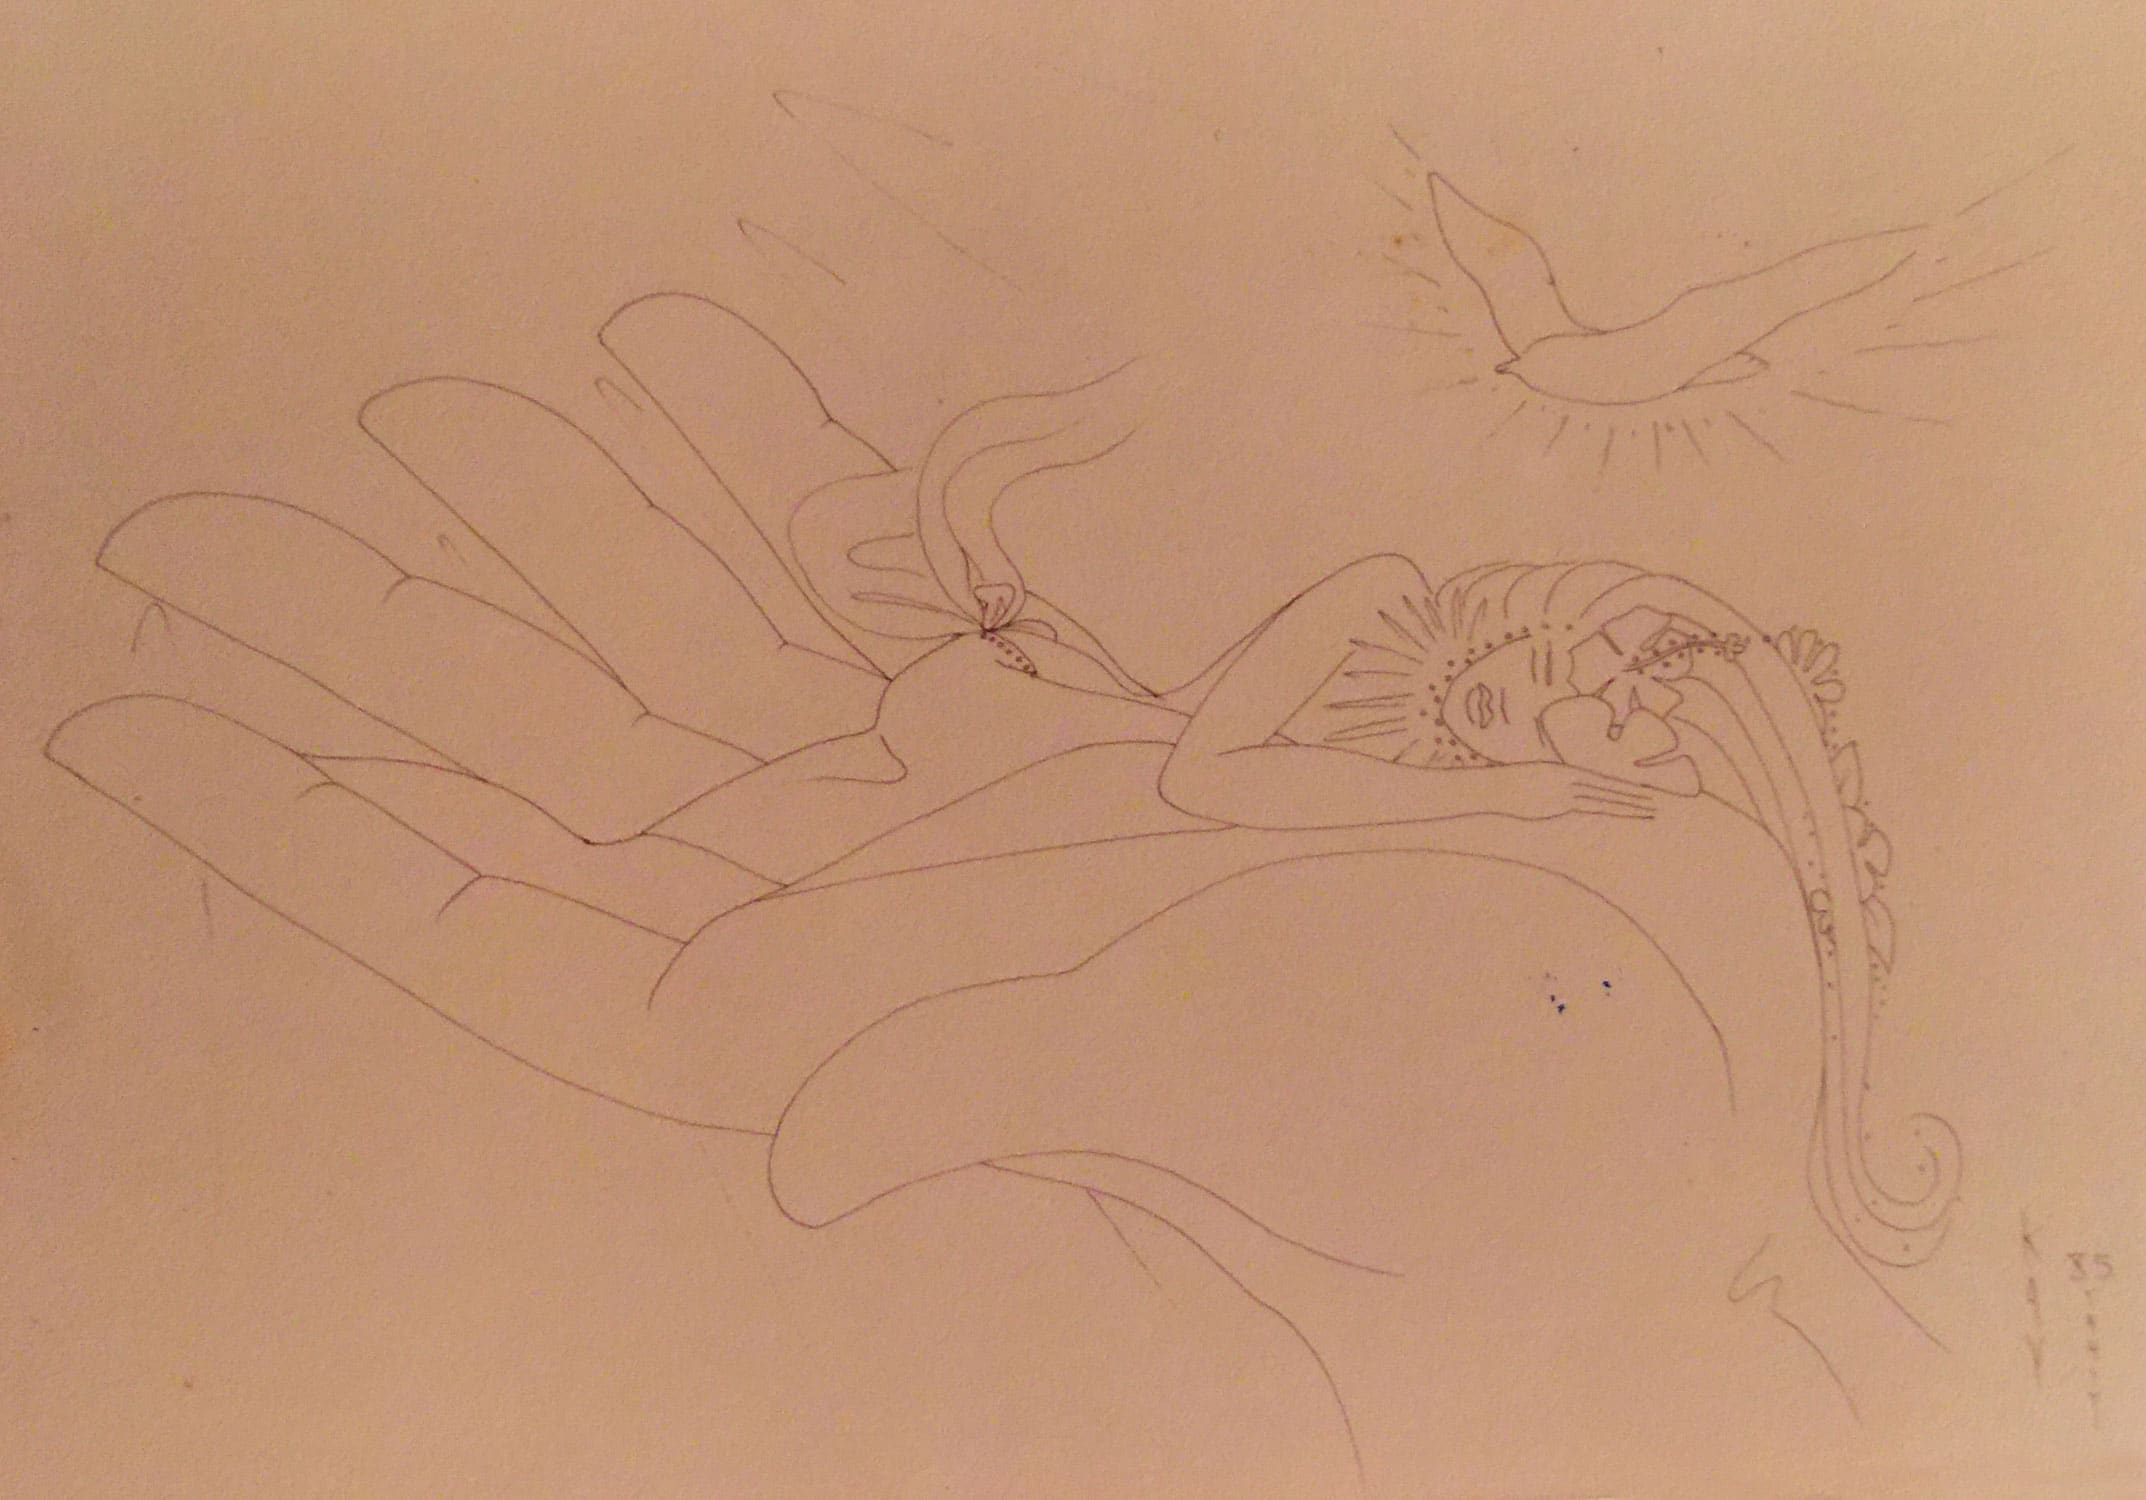 Drawing on paper of a tahitian woman sleeping in the palm of a hand.